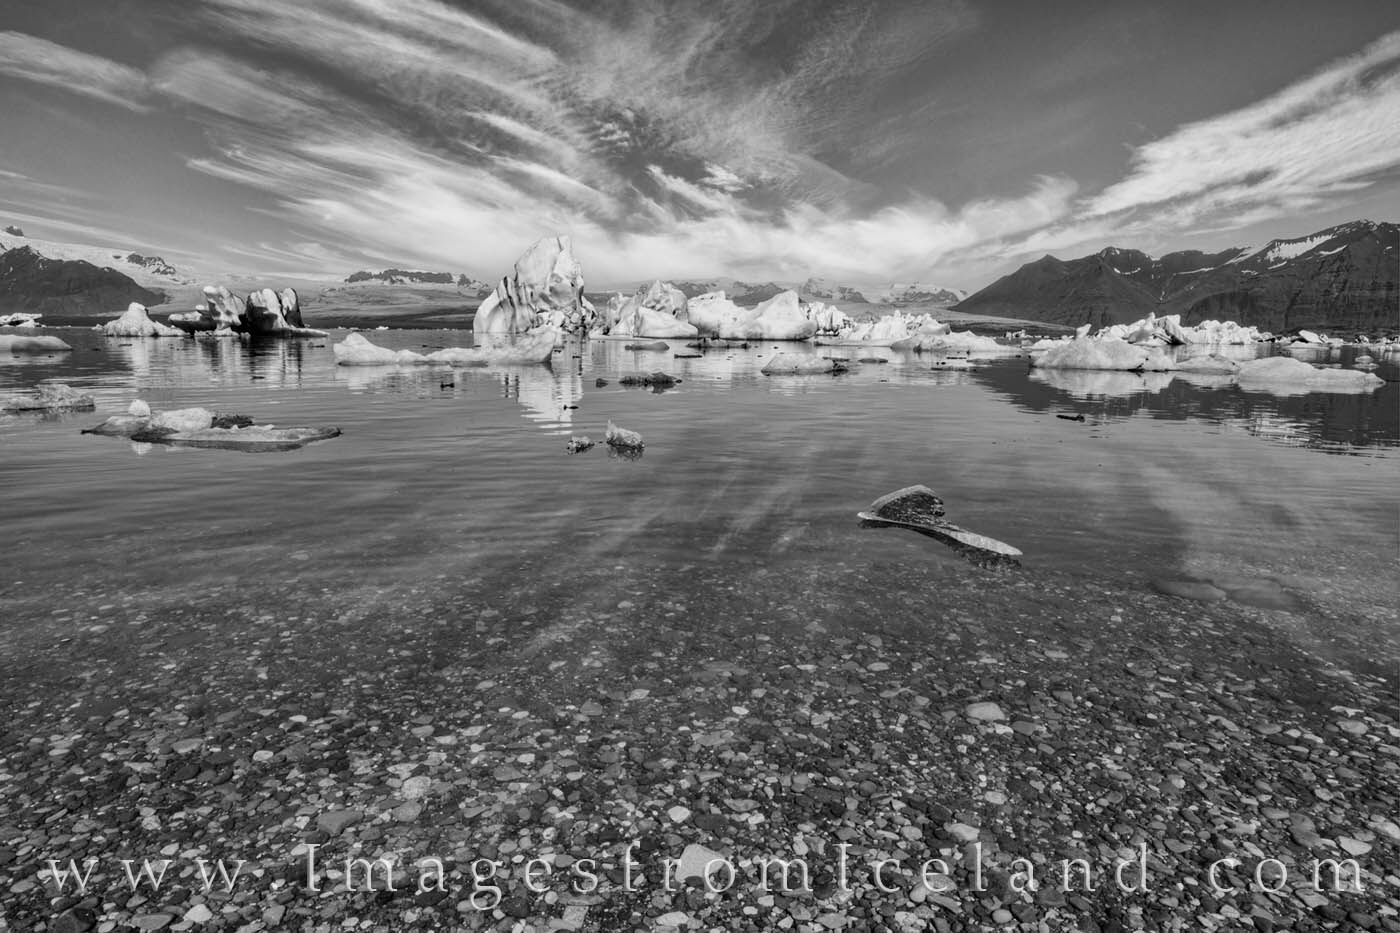 Icebergs from Breiðamerkurjökull Glacier float under a summer sky and clouds in this black and white image from south Iceland...